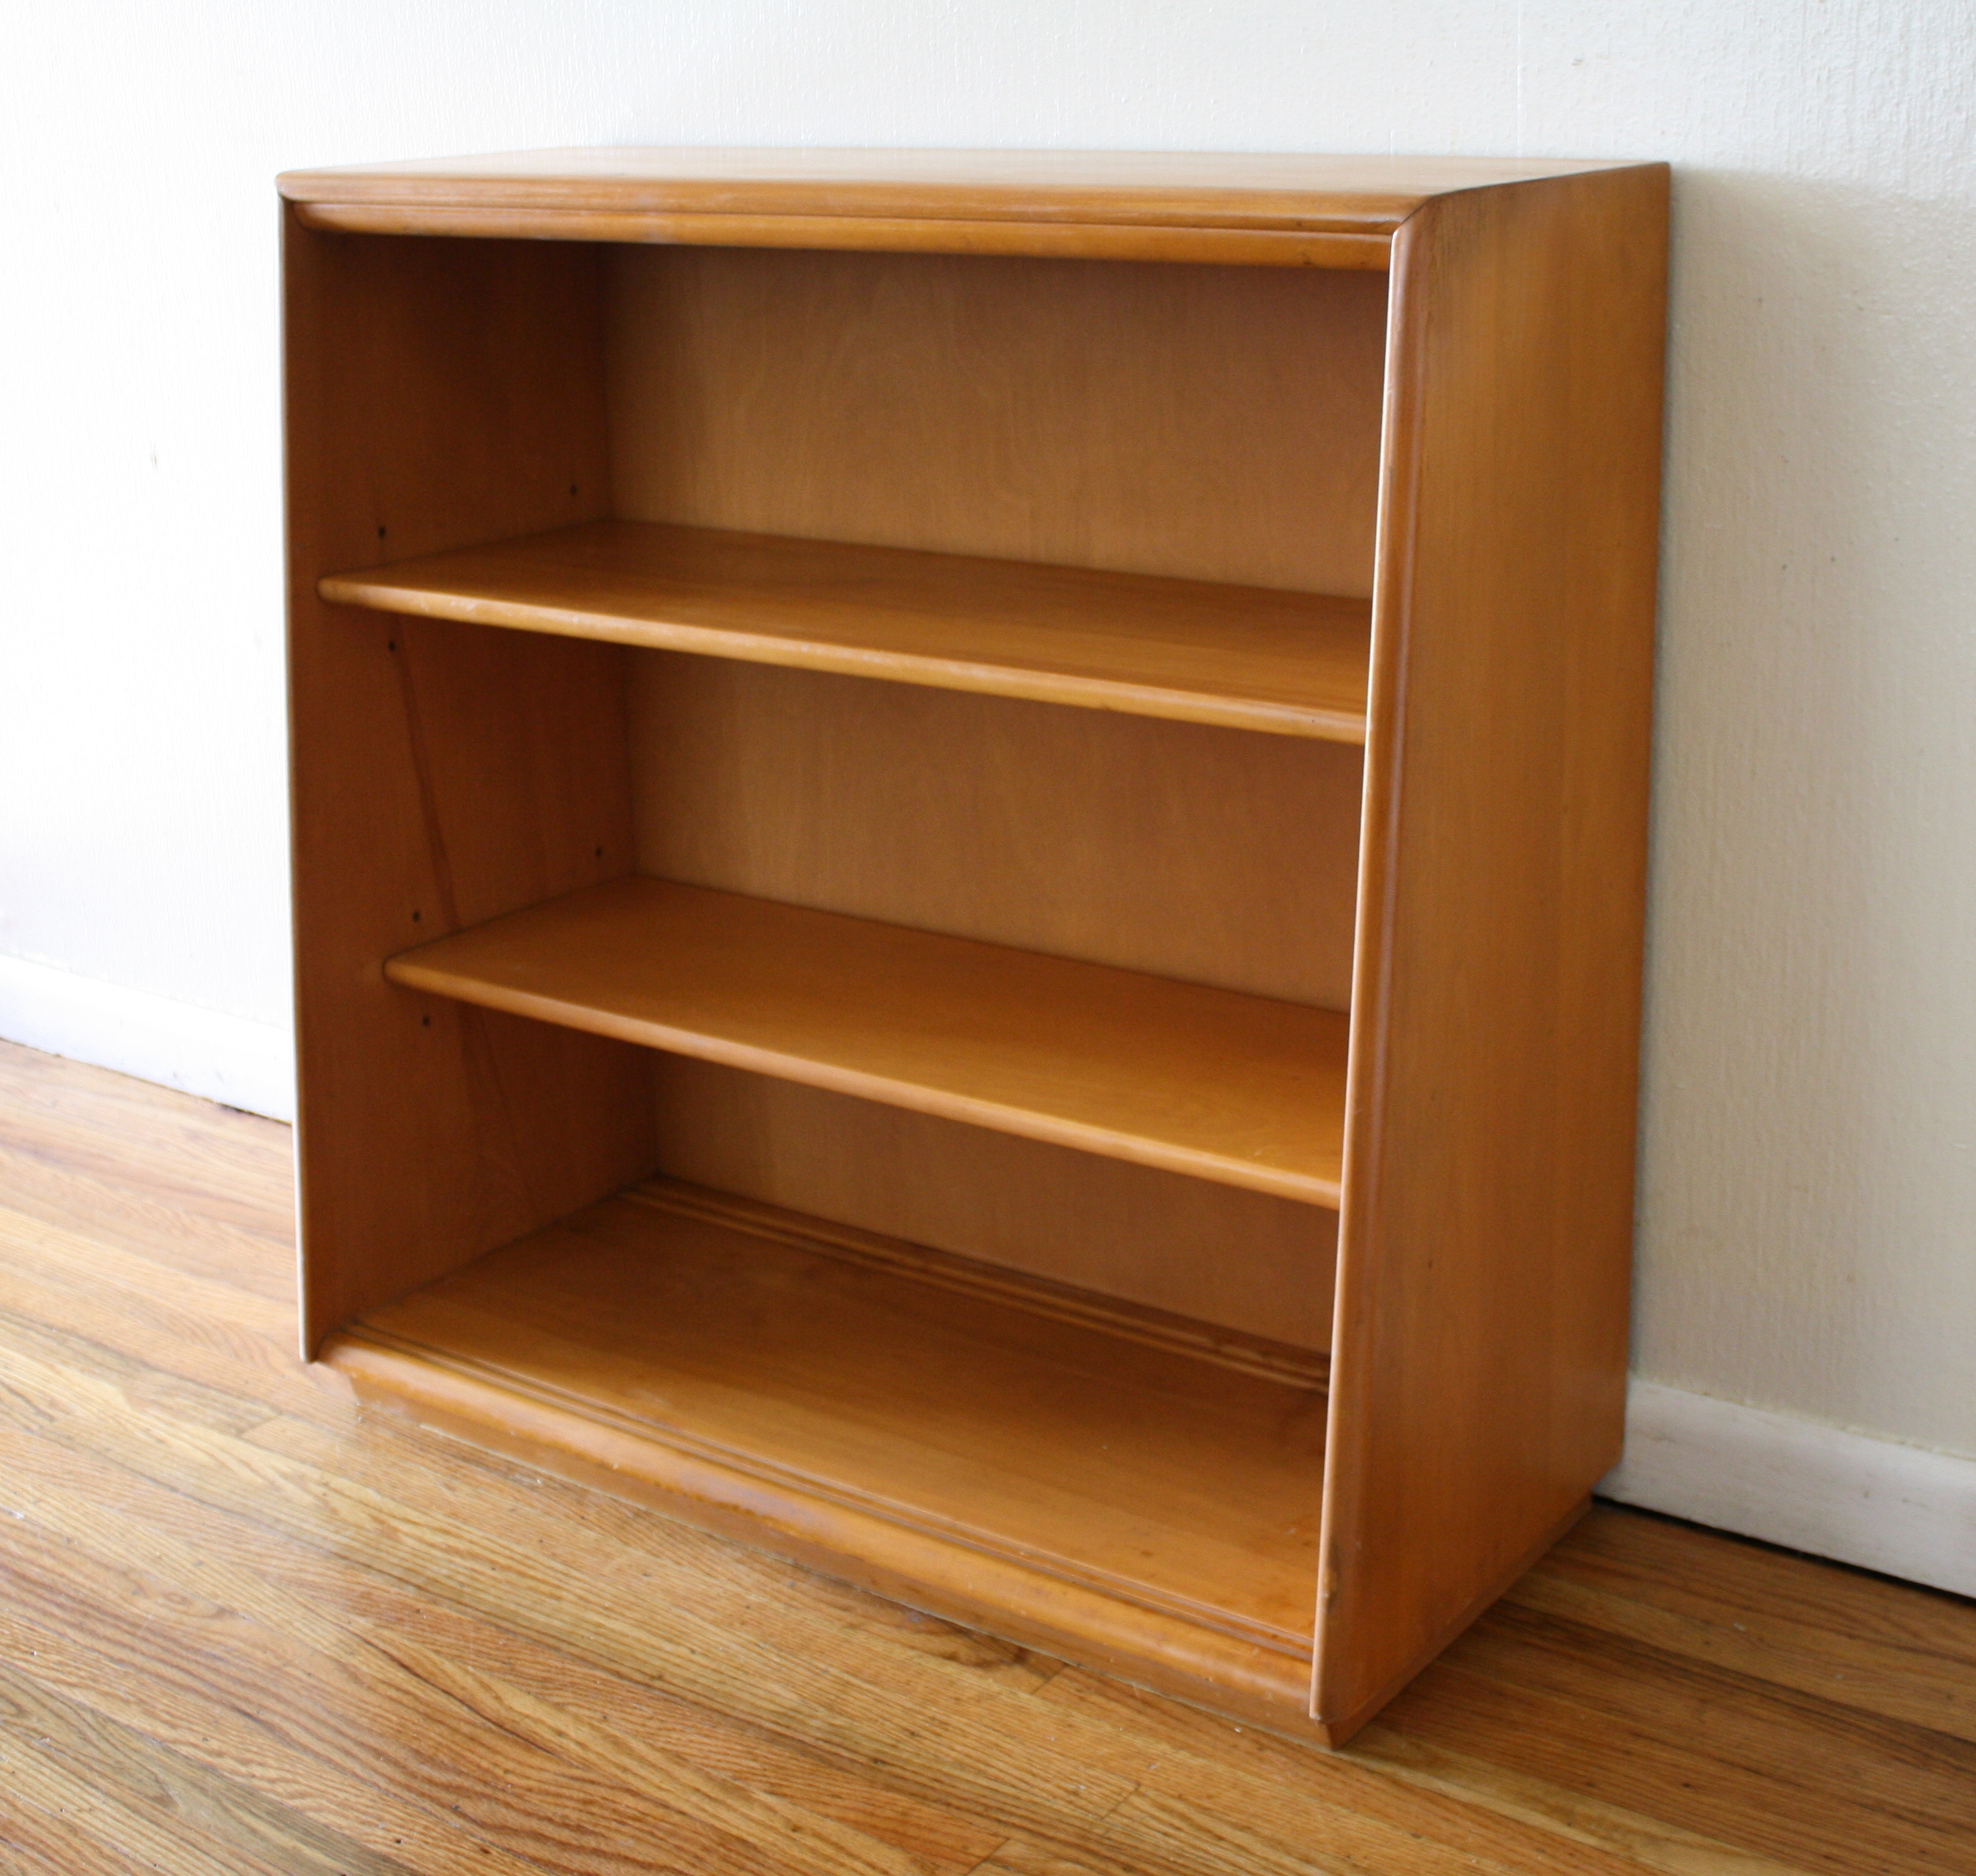 bookshelf | Picked Vintage